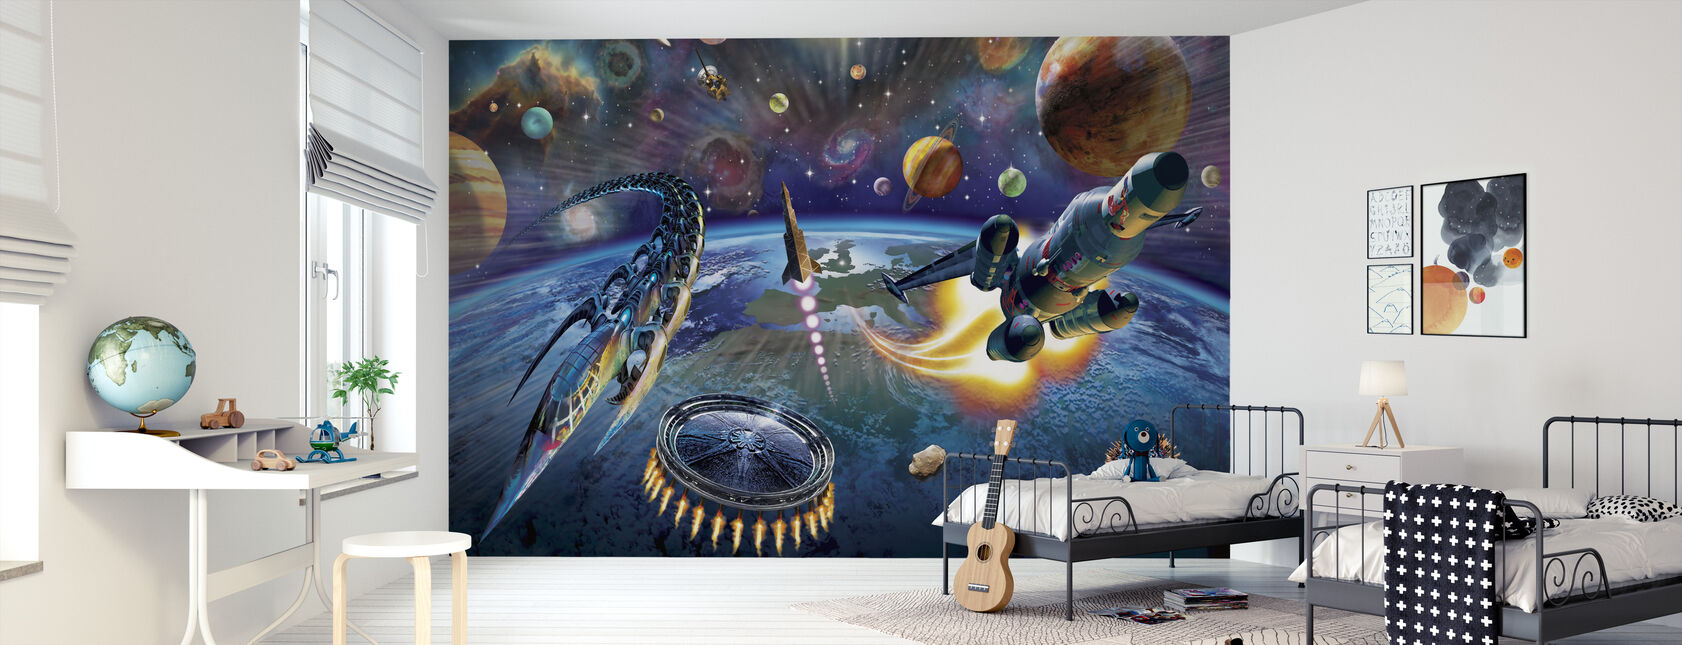 Space Ufos & Spaceships